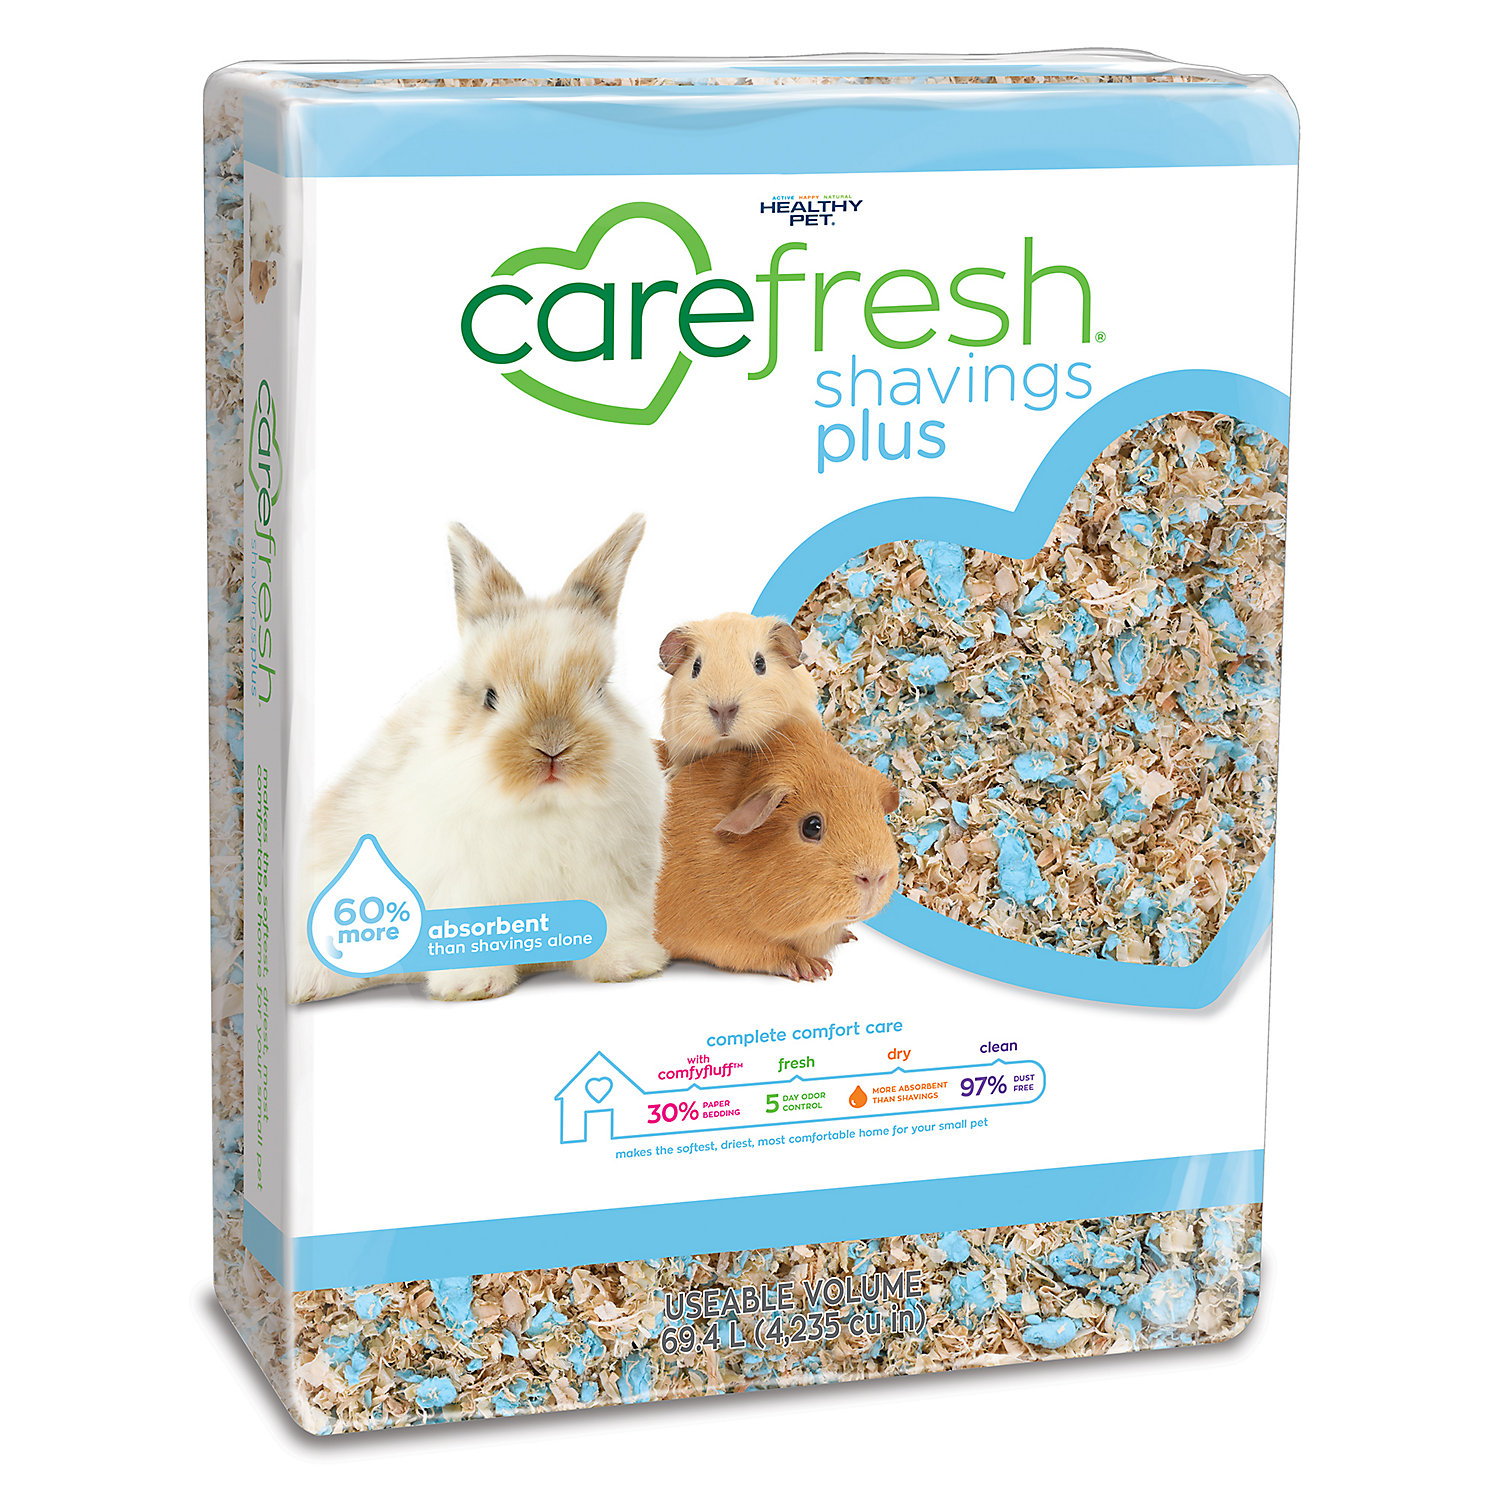 Carefresh Shavings Plus Pet Bedding 69.4 Liters